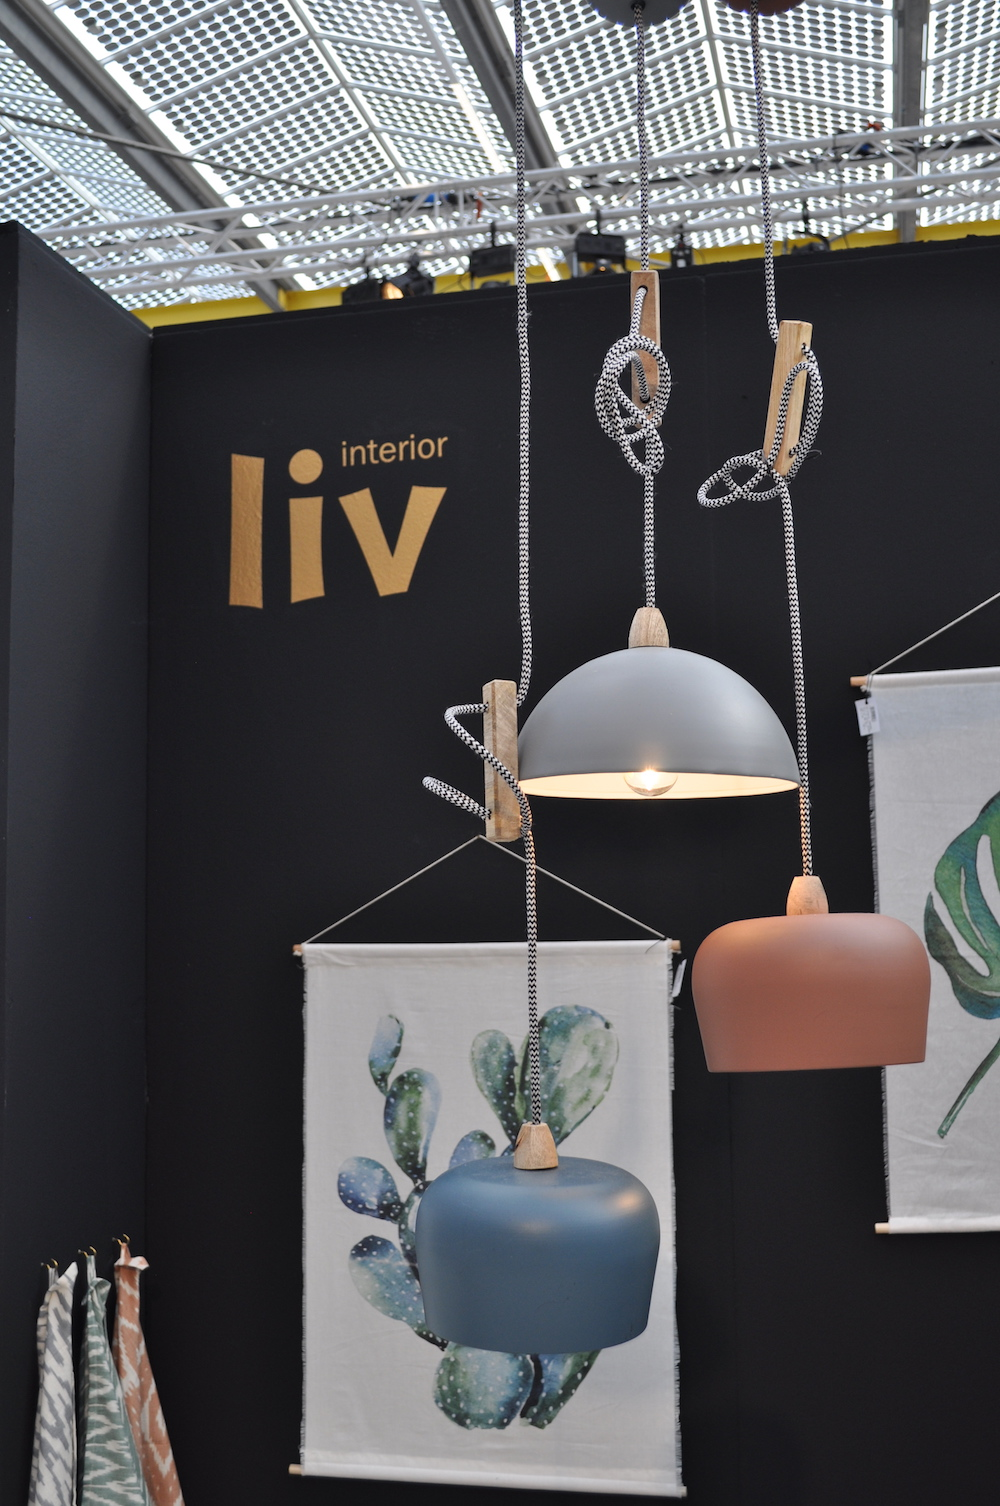 Styling ID Beurzen en evenementen showUP najaarseditie verrast showUP Liv Interior lampen